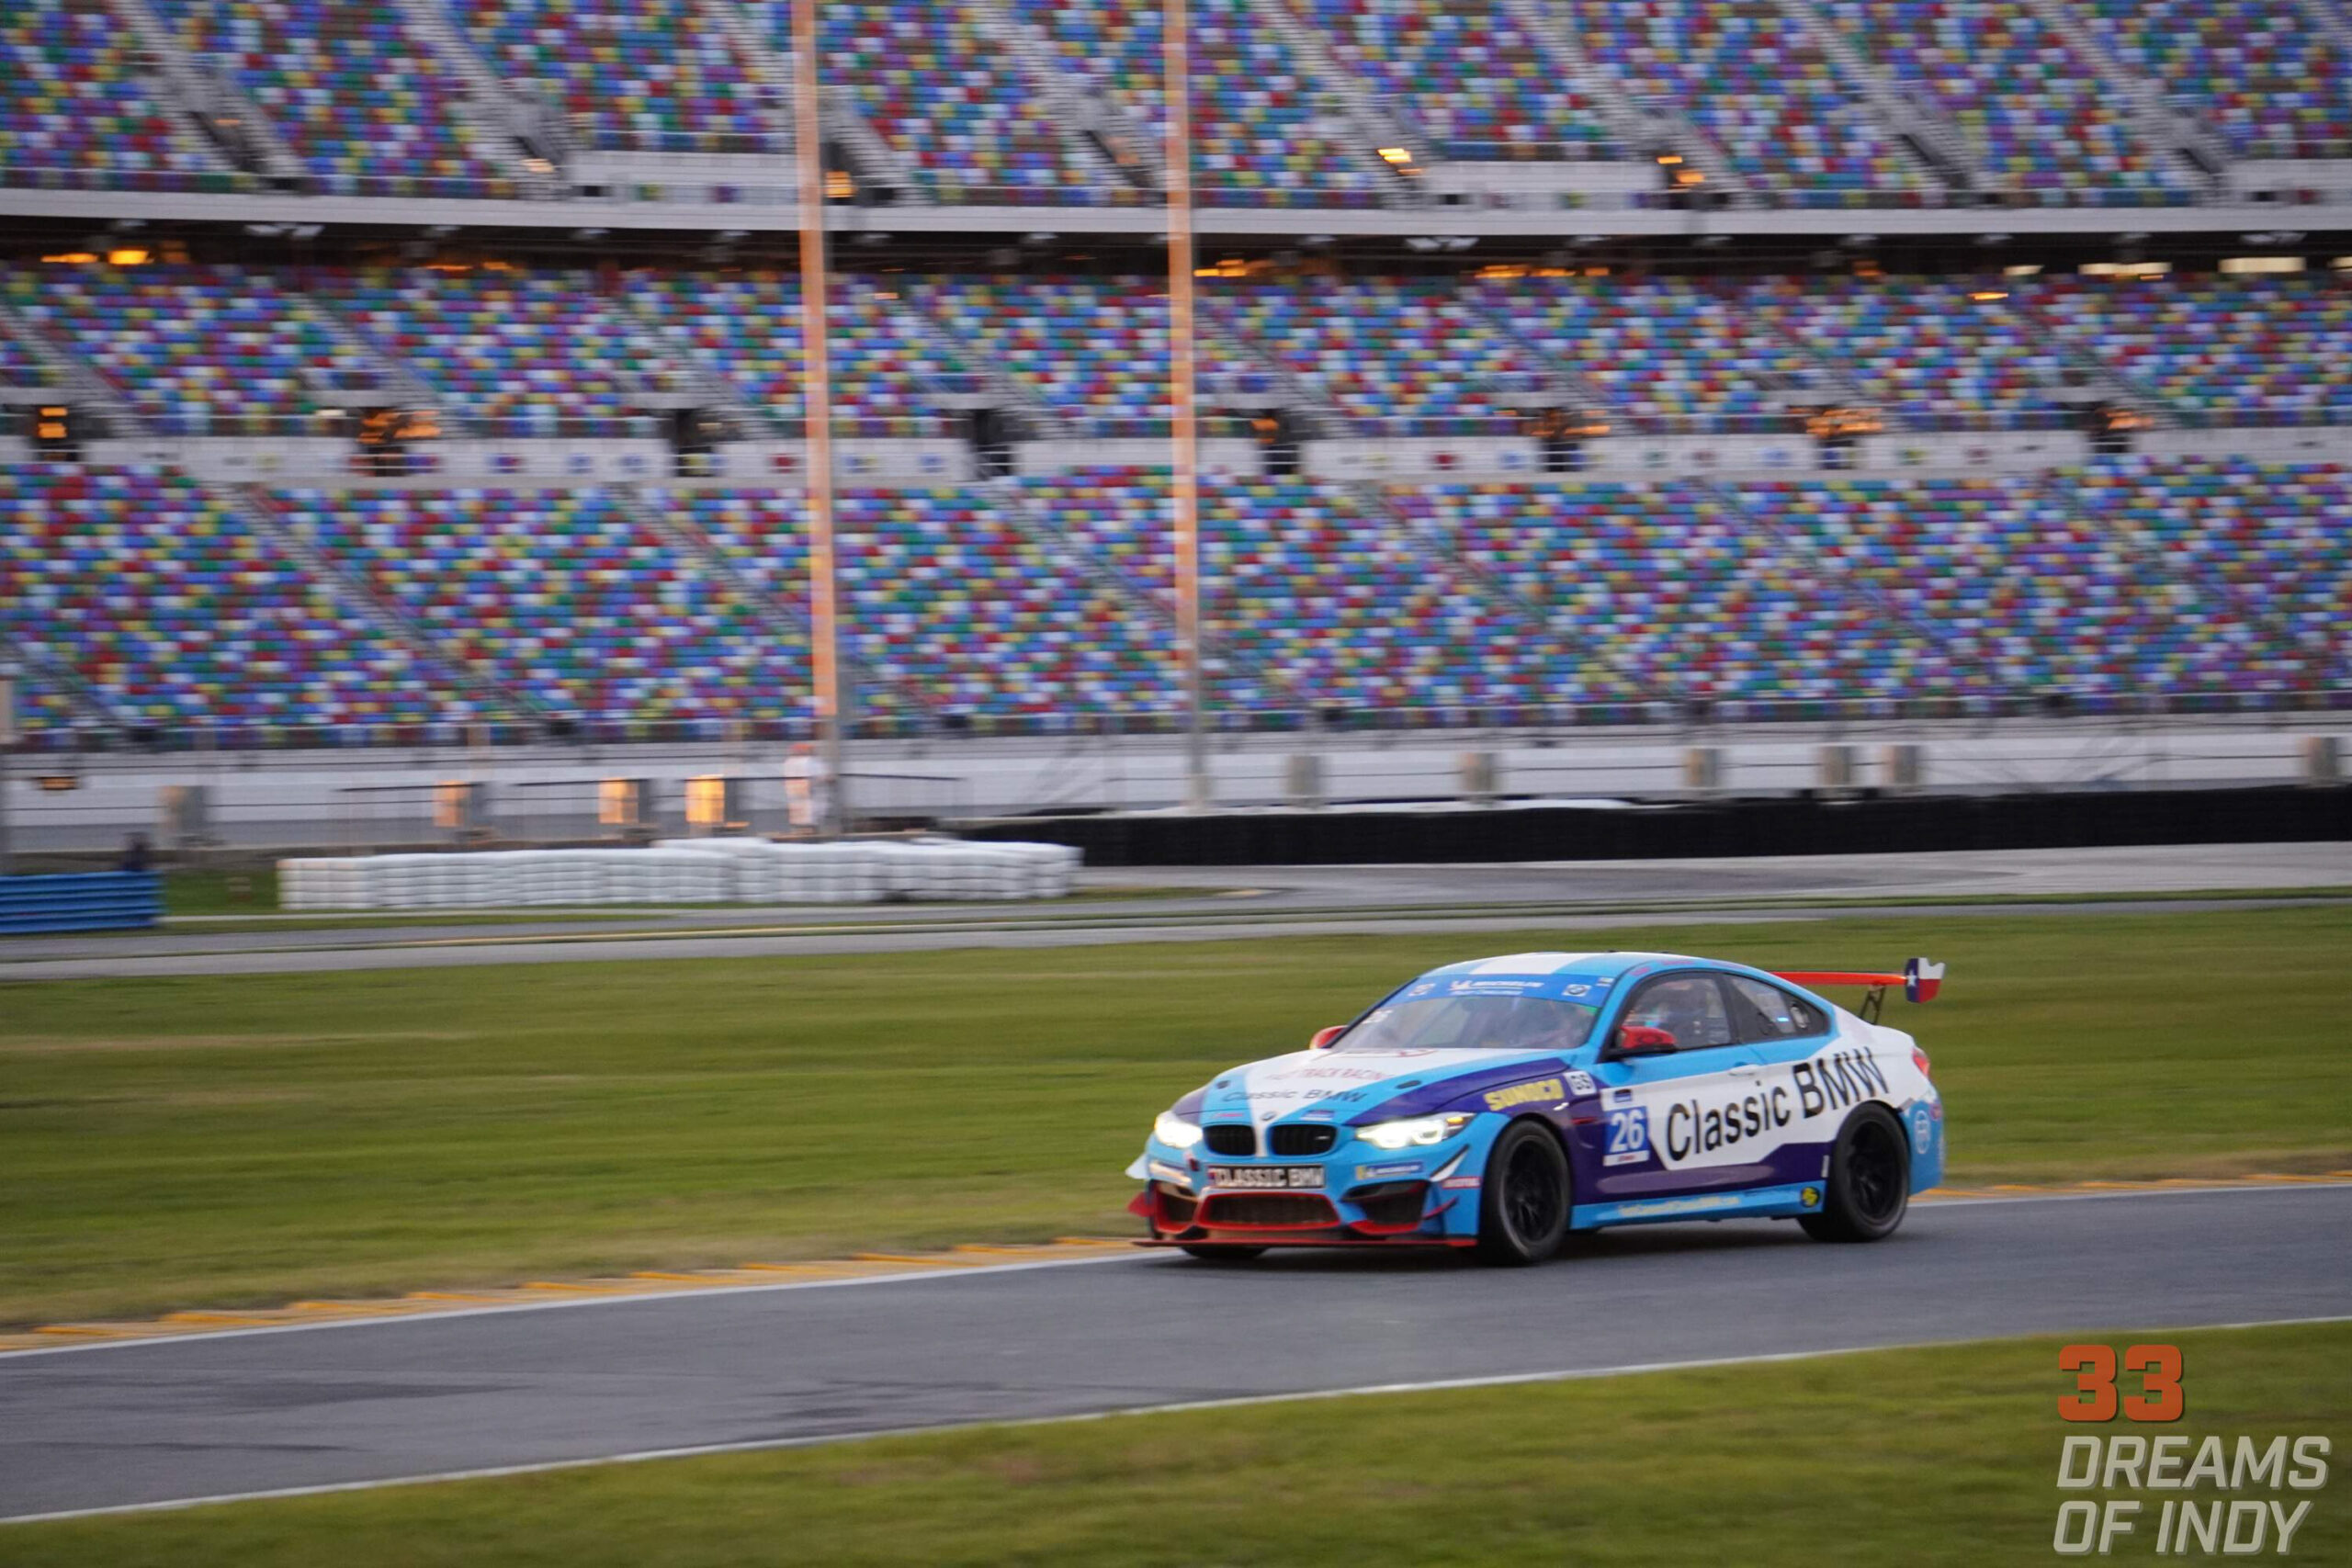 2020 IMSA Michelin Pilot Challenge Roar Before the 24 Practice